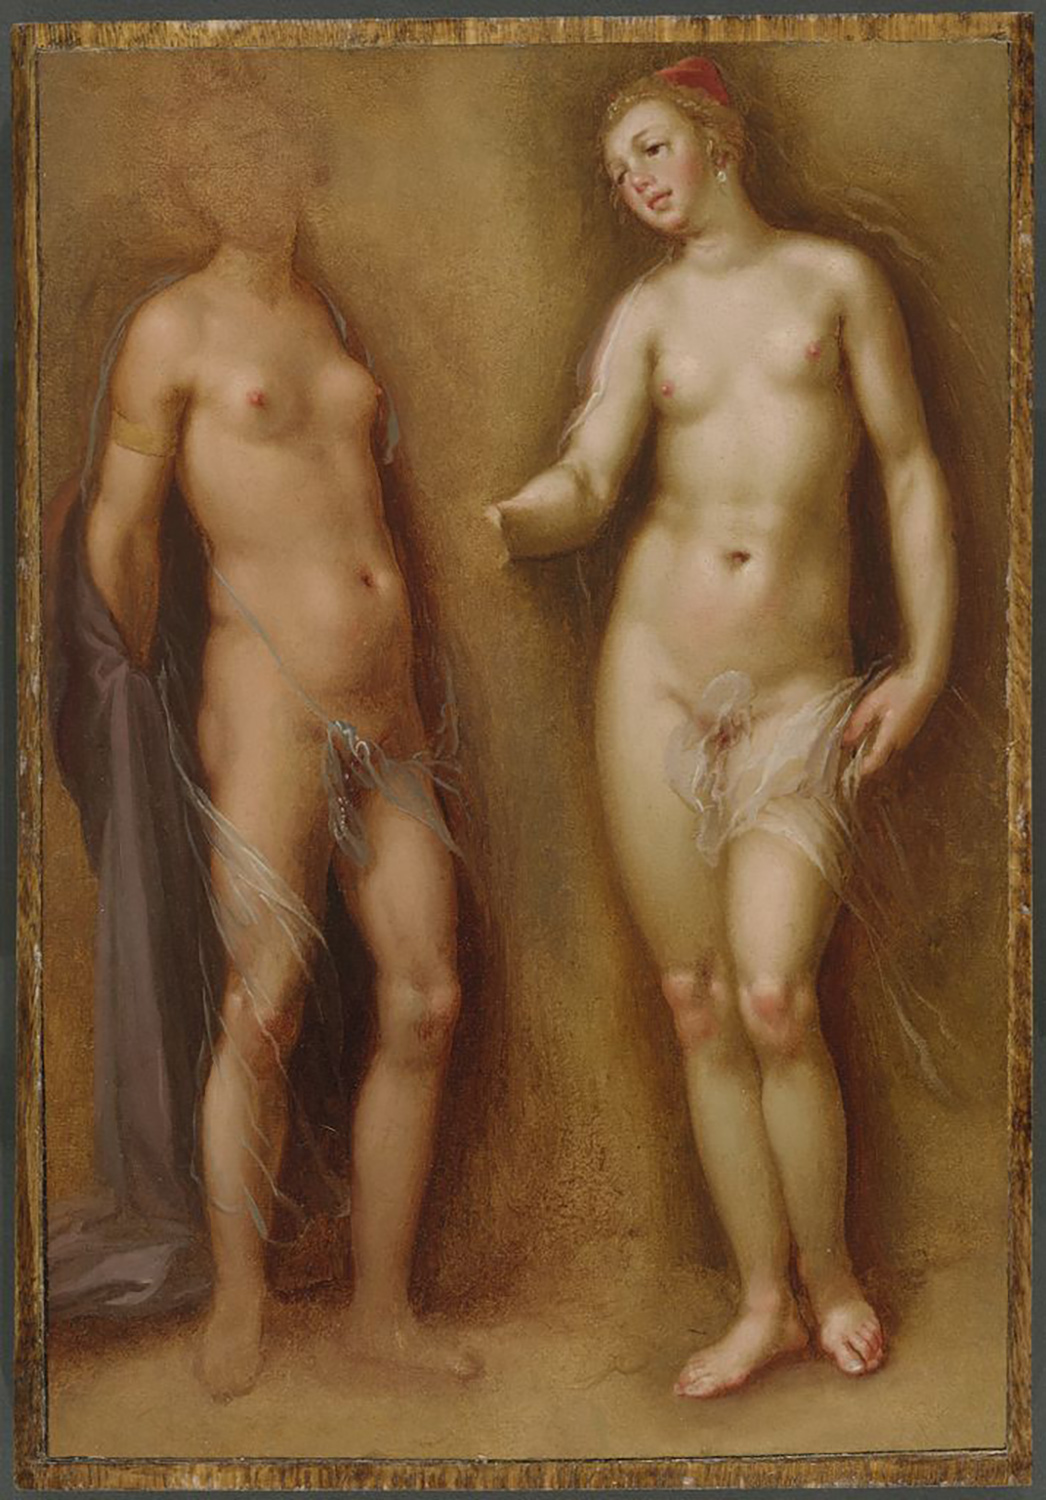 Cornelis Cornelisz. van Haarlem, Two Female Nudes, c. 1608. Oil on paper, varnished, mounted on panel. Maida and George Abrams Collection, Boston, Massachusetts, TL41760.25.